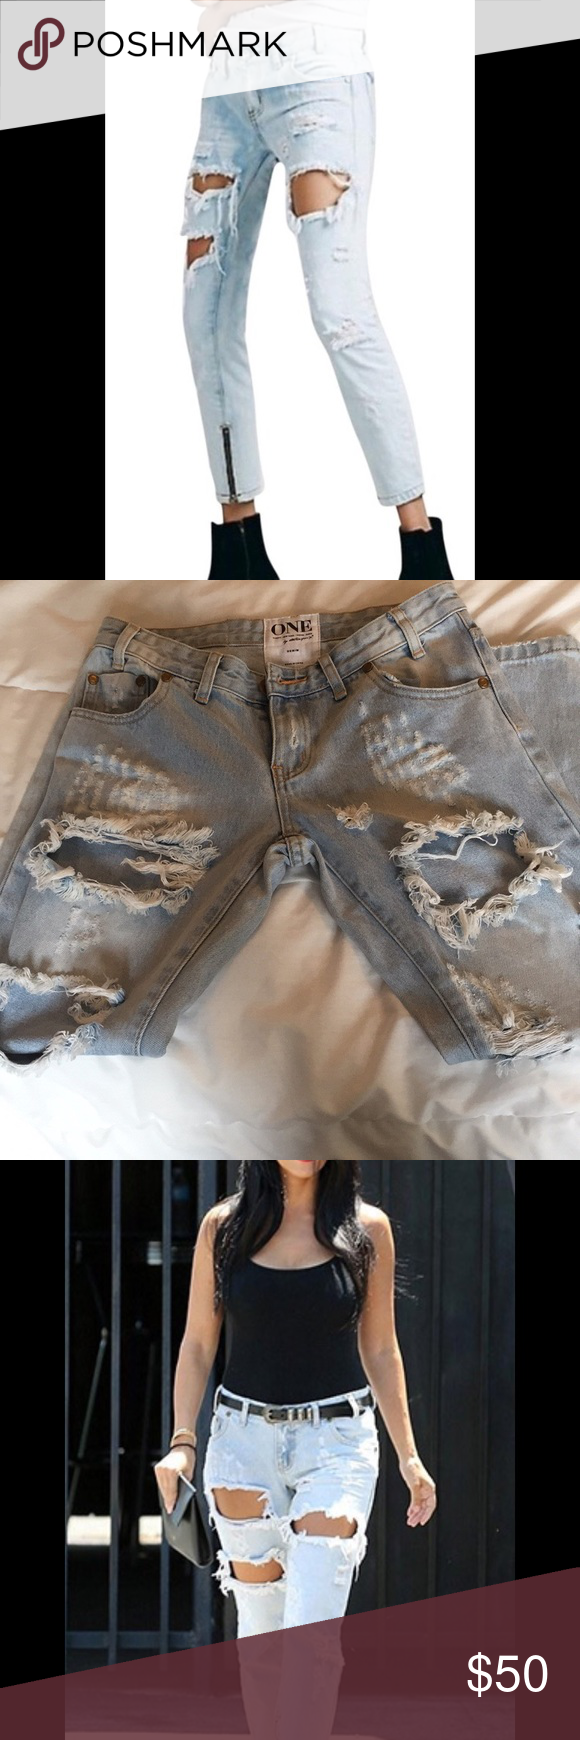 One Teaspoon Jeans Great condition  Style is trashed free birds  Size 24 No flaws One Teaspoon Jeans #myposhpicks